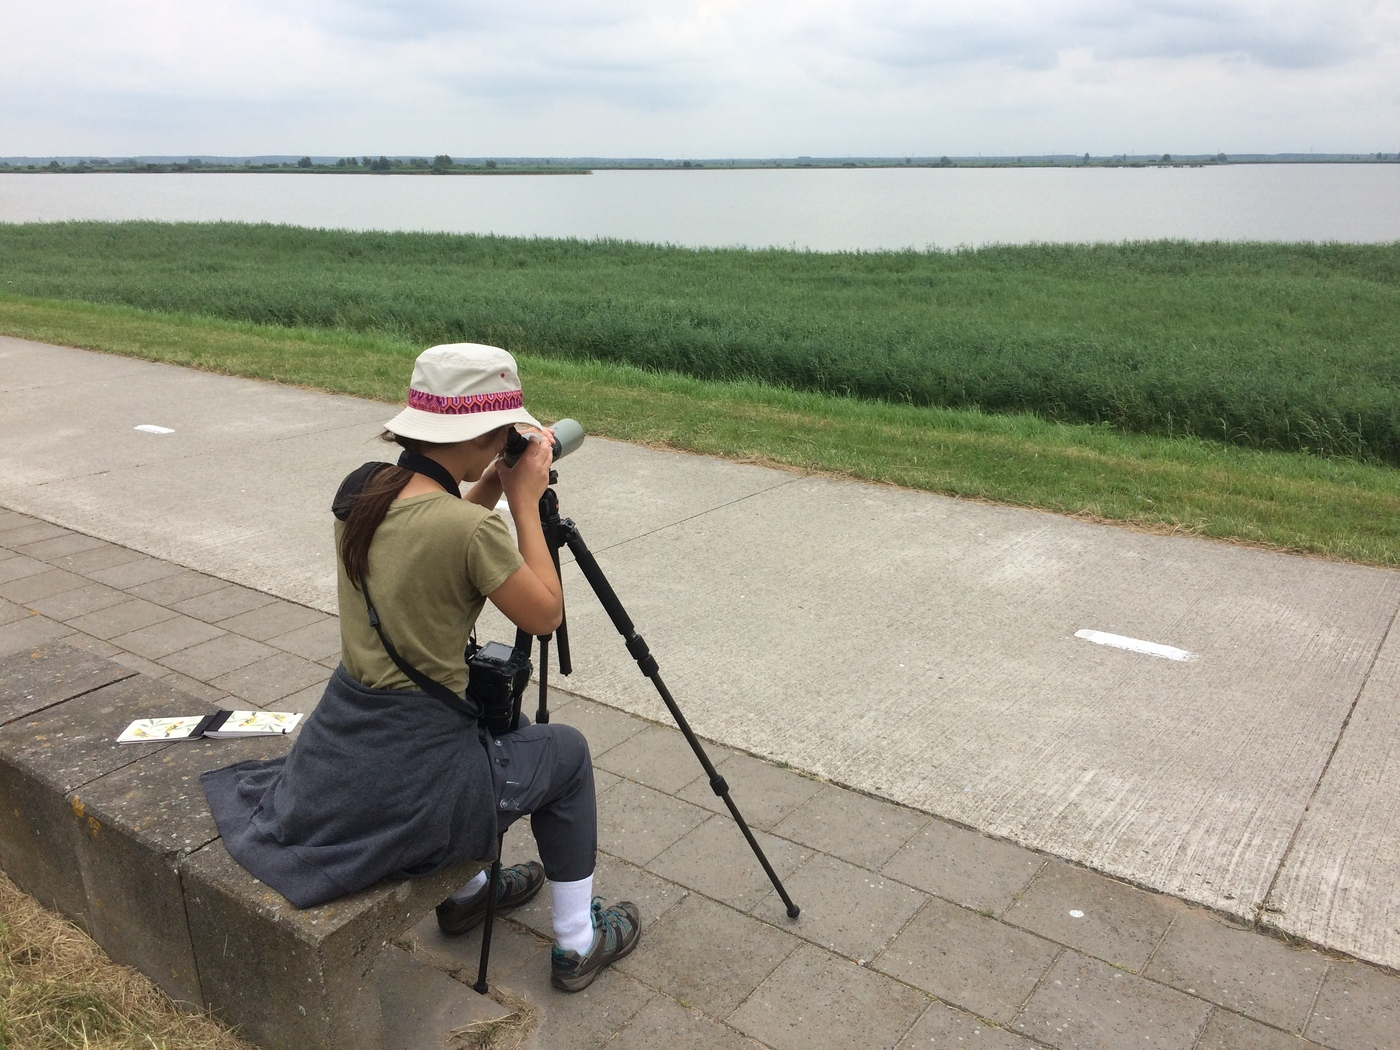 20180619 Full Day Oostvaardersplassen